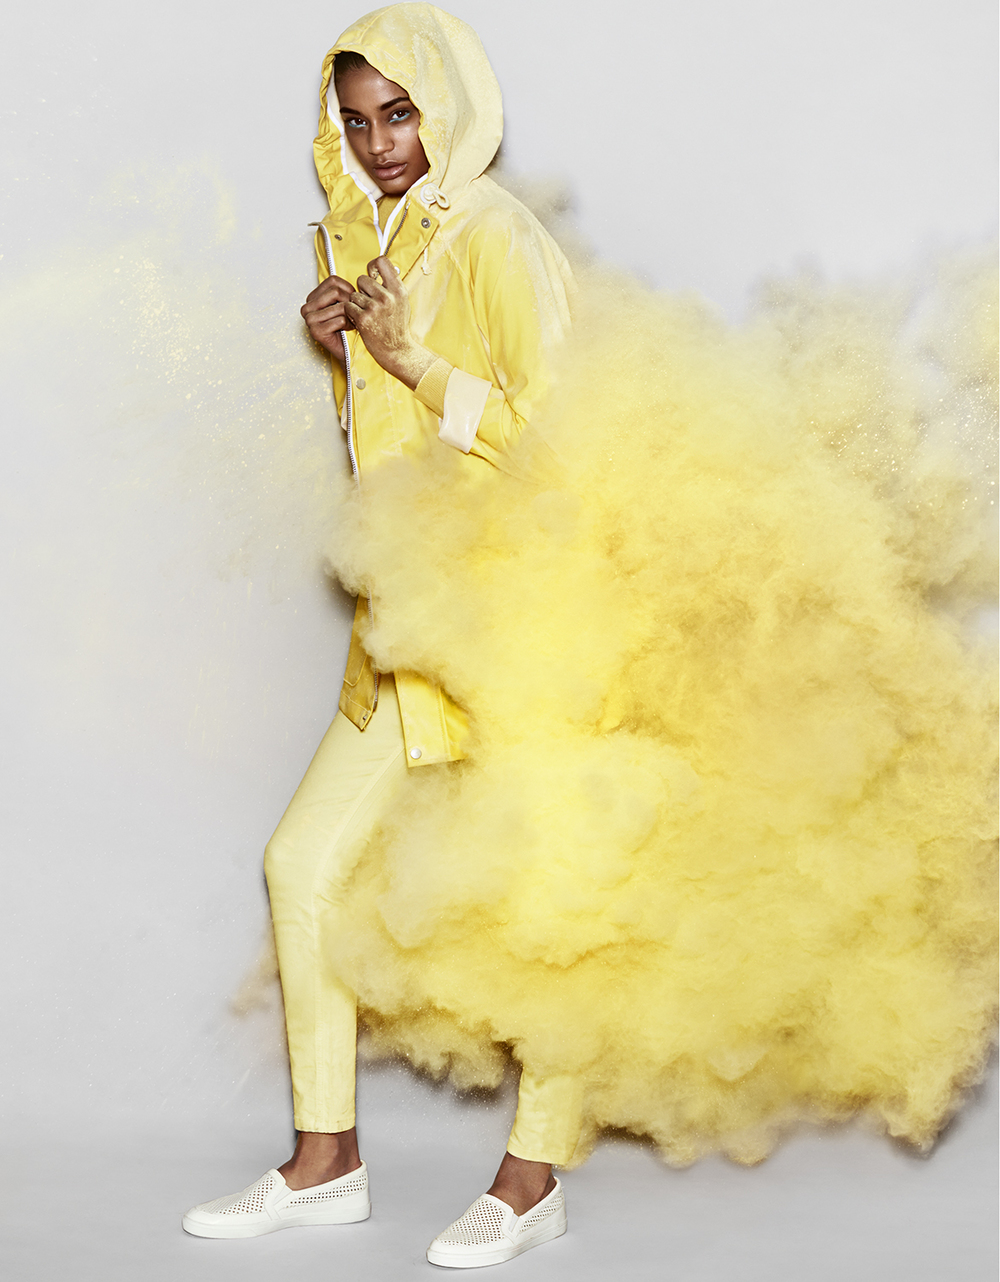 2014_02_20_Stylist_Powder_Paint_06_Shot_06_140 1.jpg